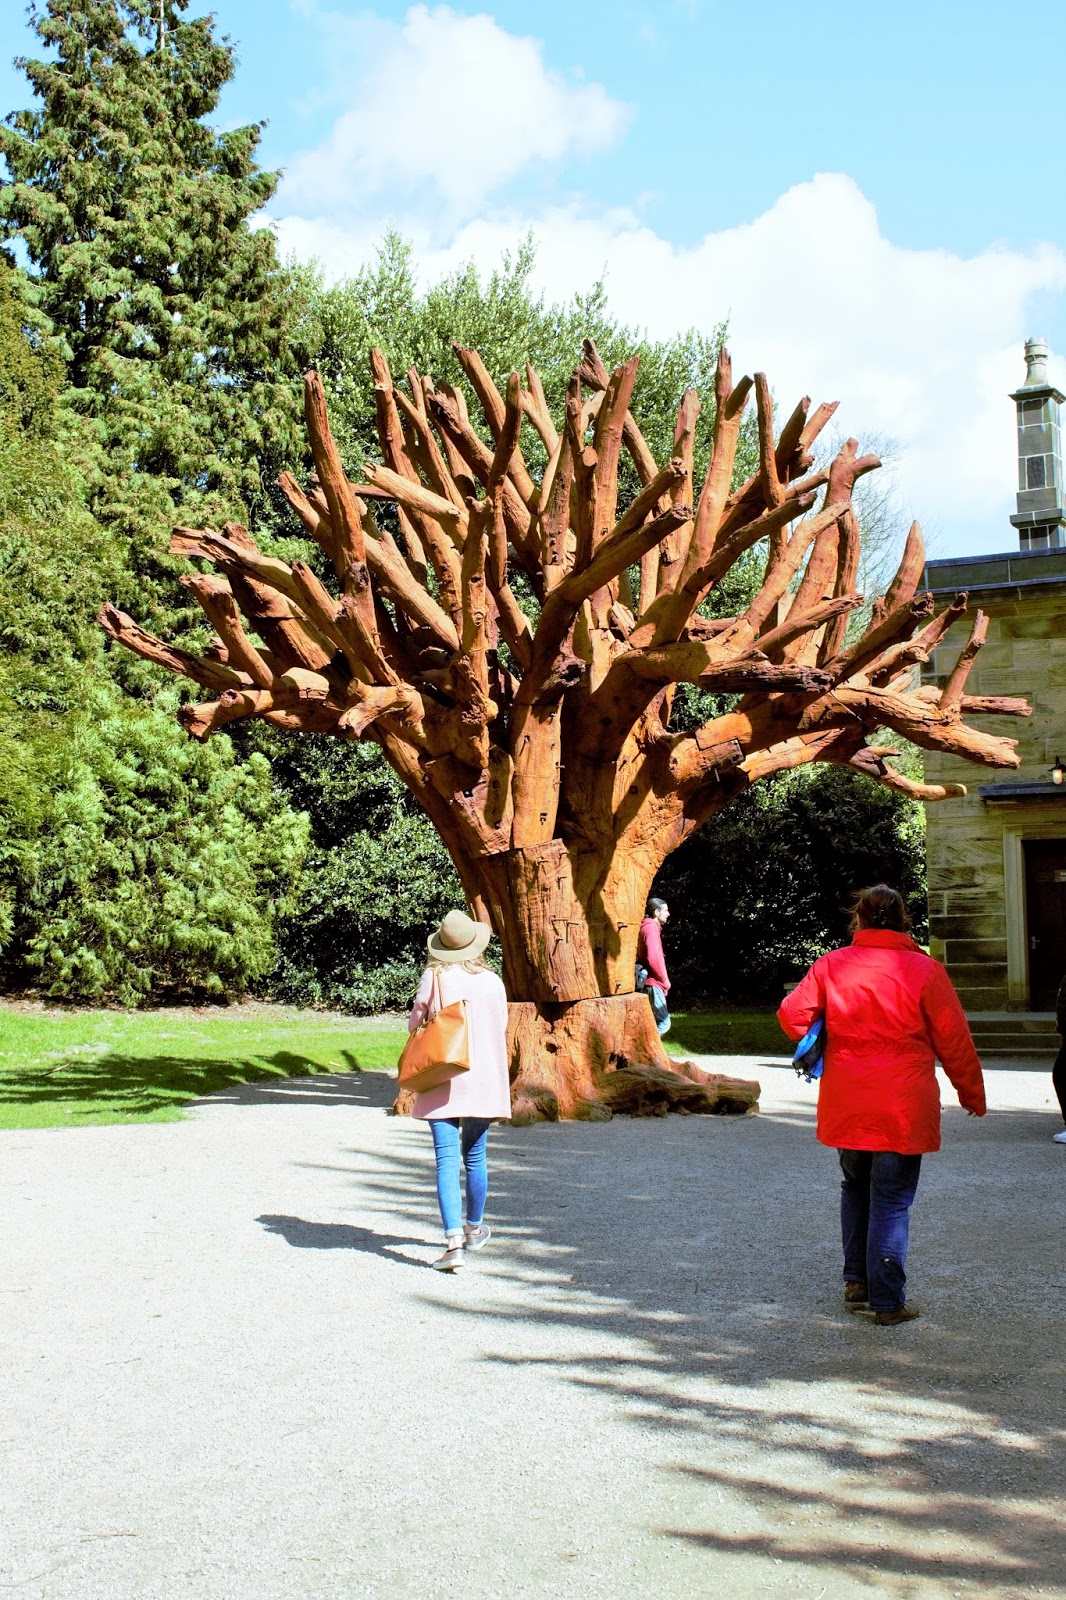 The Iron Tree by Ai Weiwei at the Yorkshire Sculpture Park